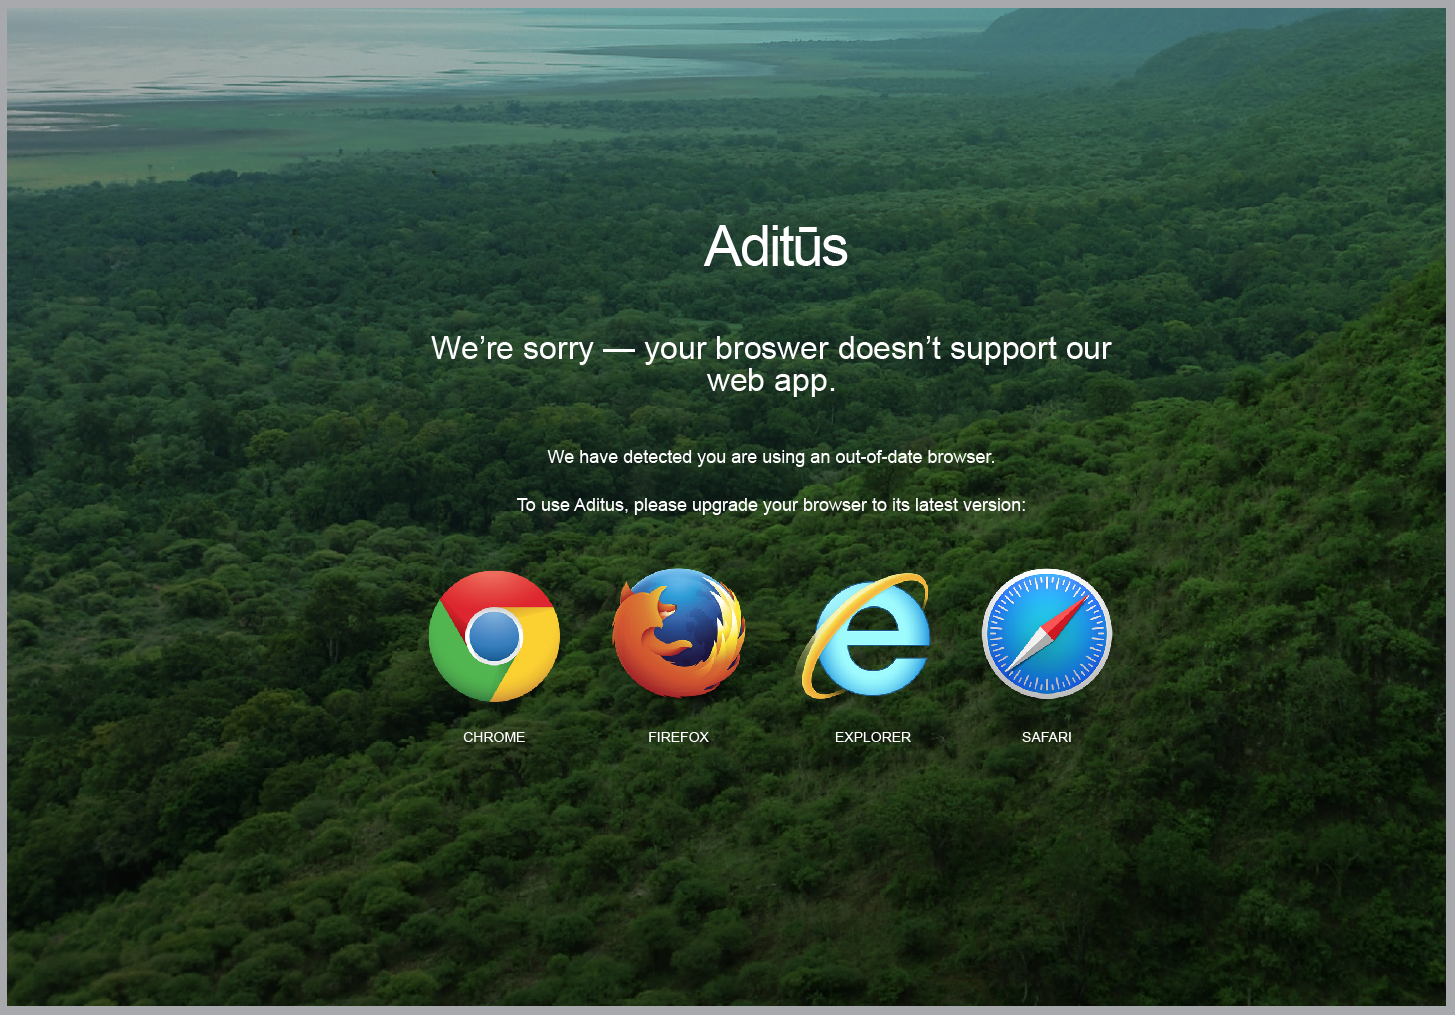 Aditus 2.0 - Upgrade Browser message 2.png